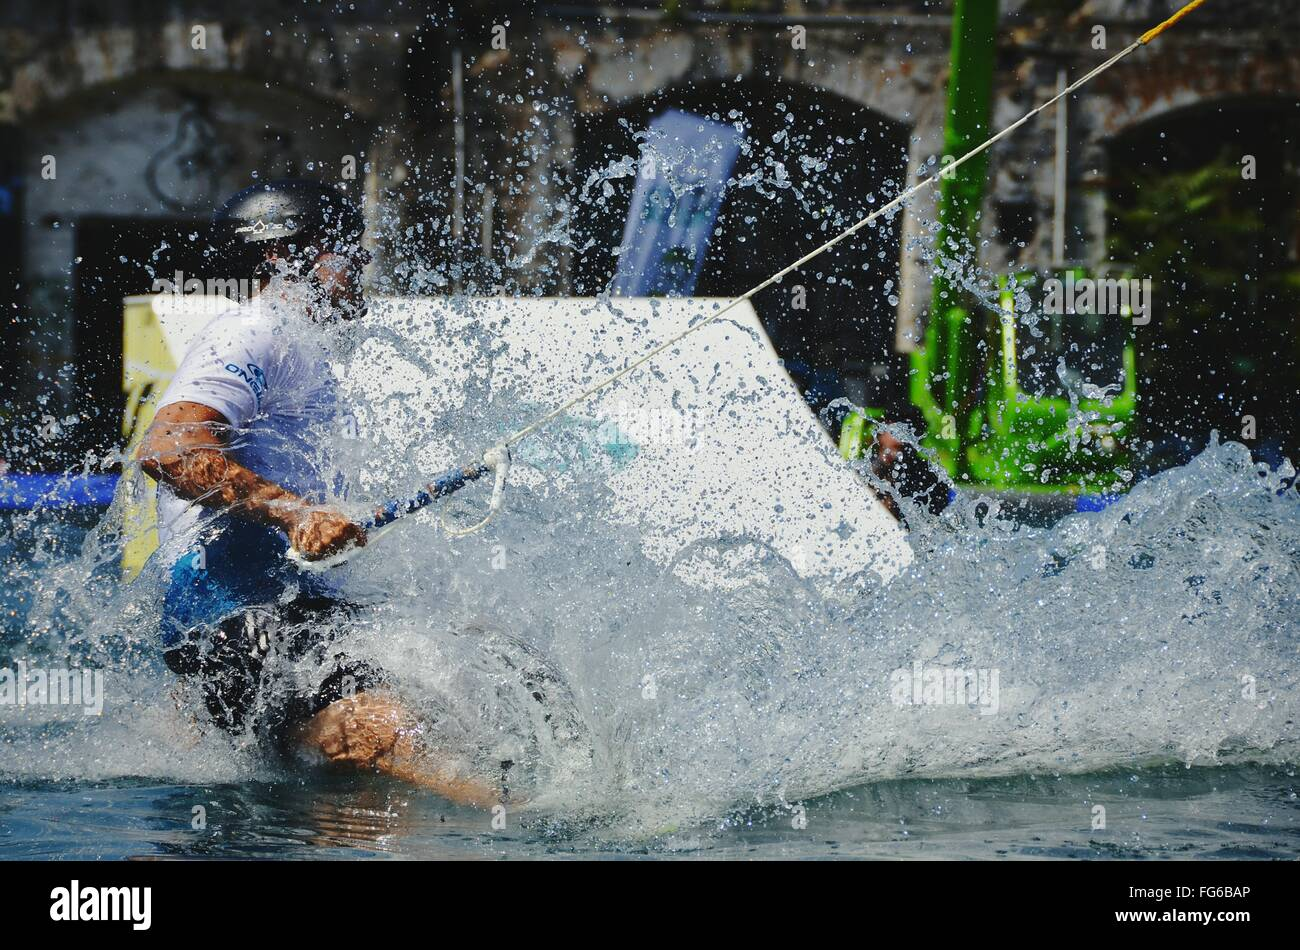 Close-Up Of Man Wakeboarding In River - Stock Image